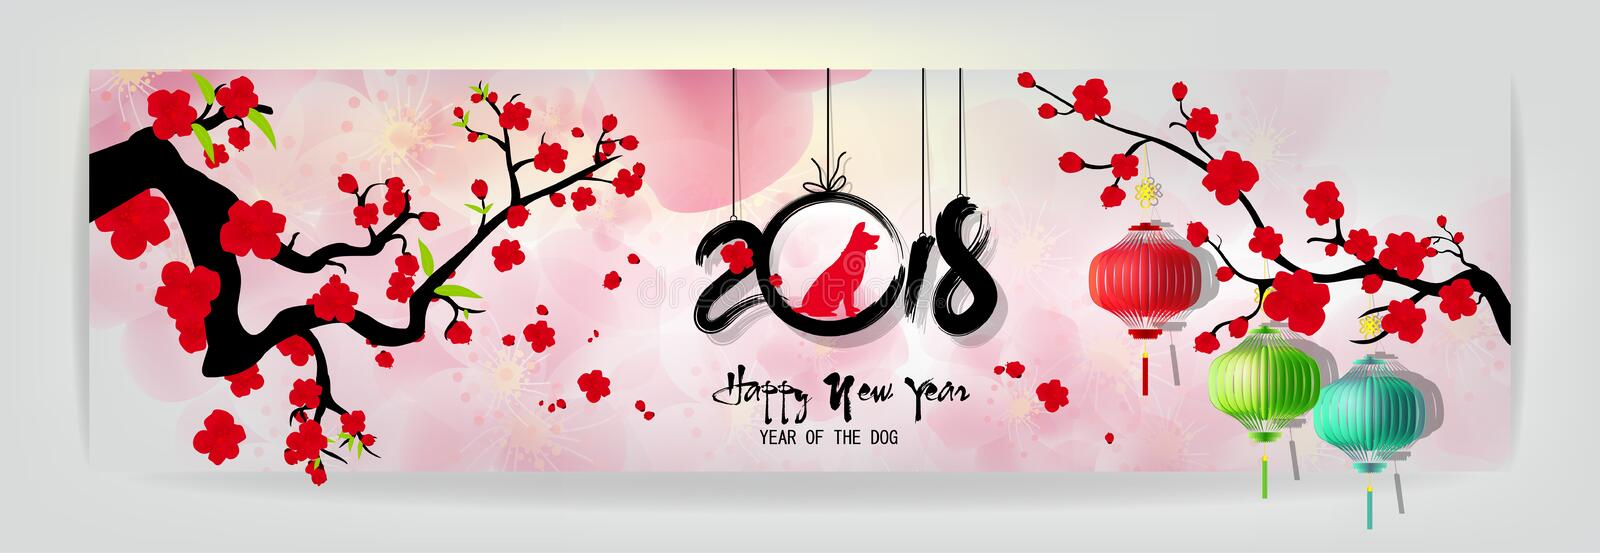 Set Banner Happy new year 2018 greeting card and chinese new year of the dog, Cherry blossom background royalty free illustration